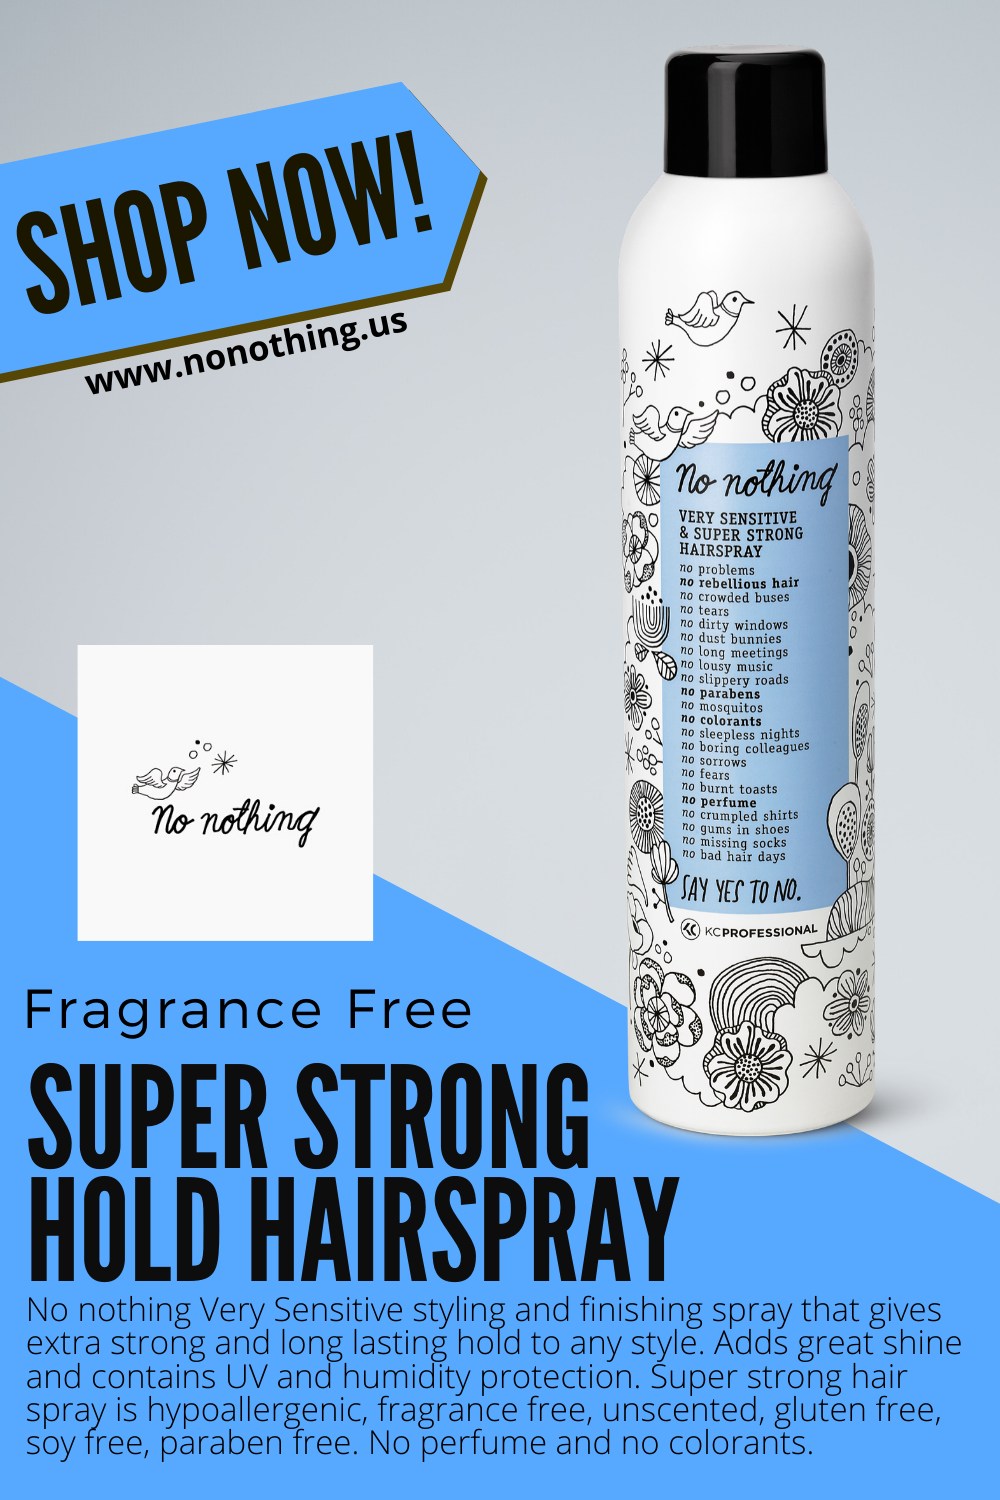 Fragrance Free Super Strong Hold Hairspray Beauty Hair Products In 2020 Fragrance Free Products Fragrance Free Shampoo Paraben Free Products